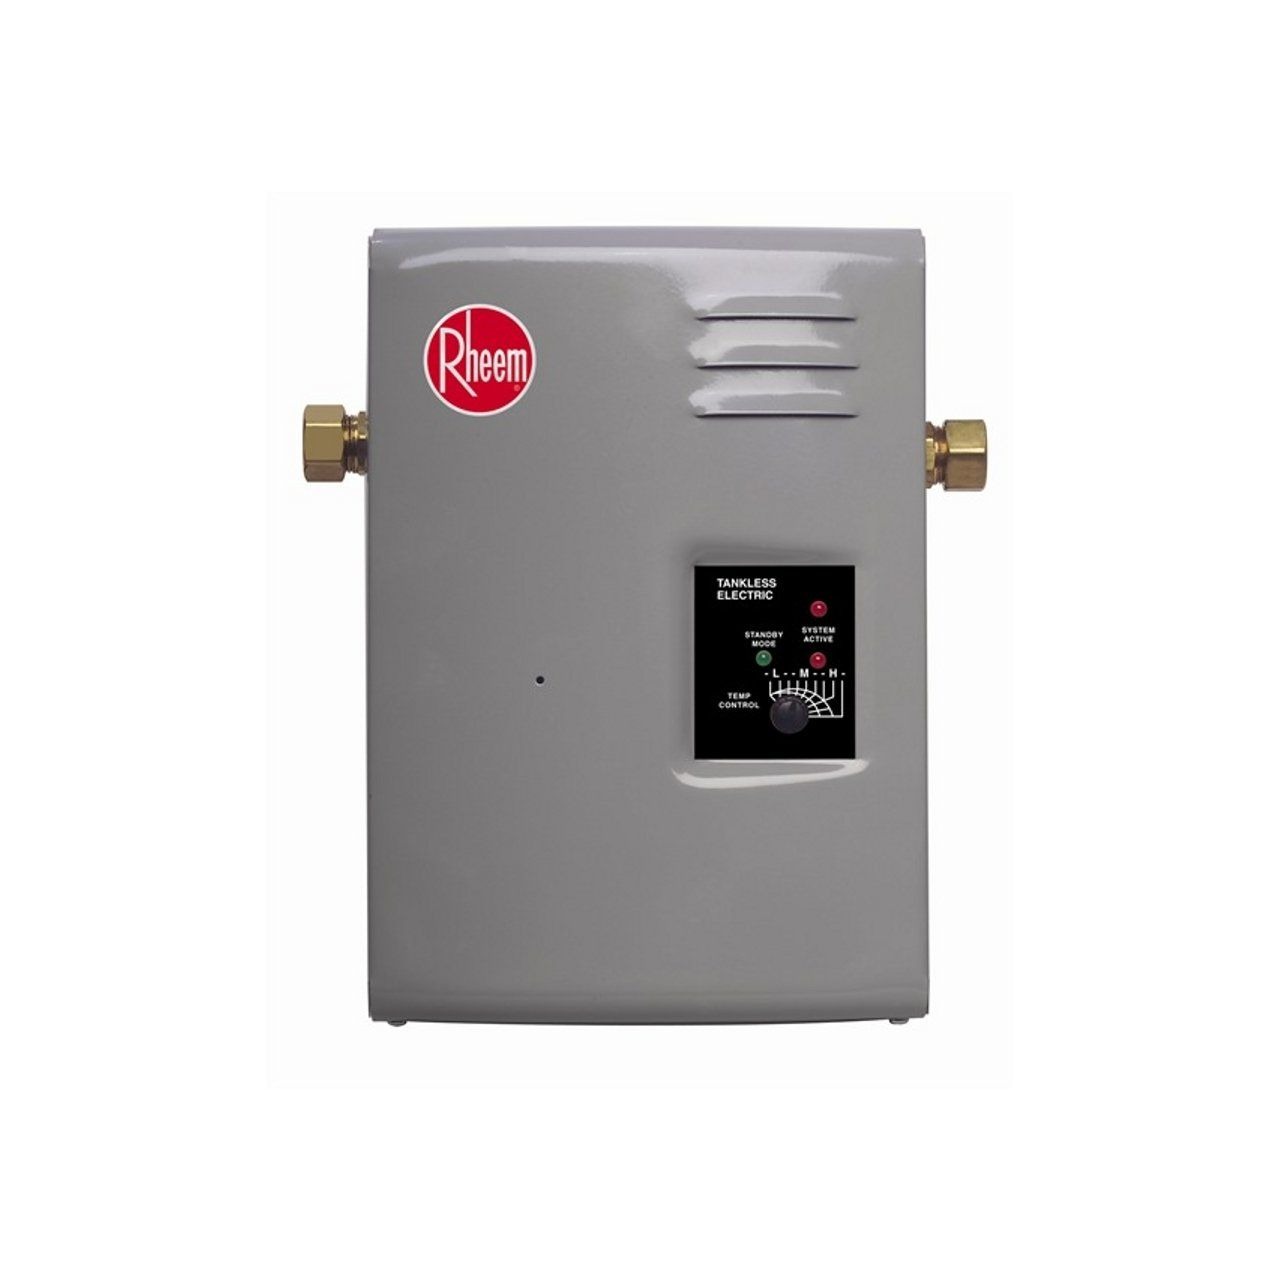 Rheem Hot Water Heater >> Rheem Rte 9 Electric Tankless Water Heater 3 Gpm Tankless